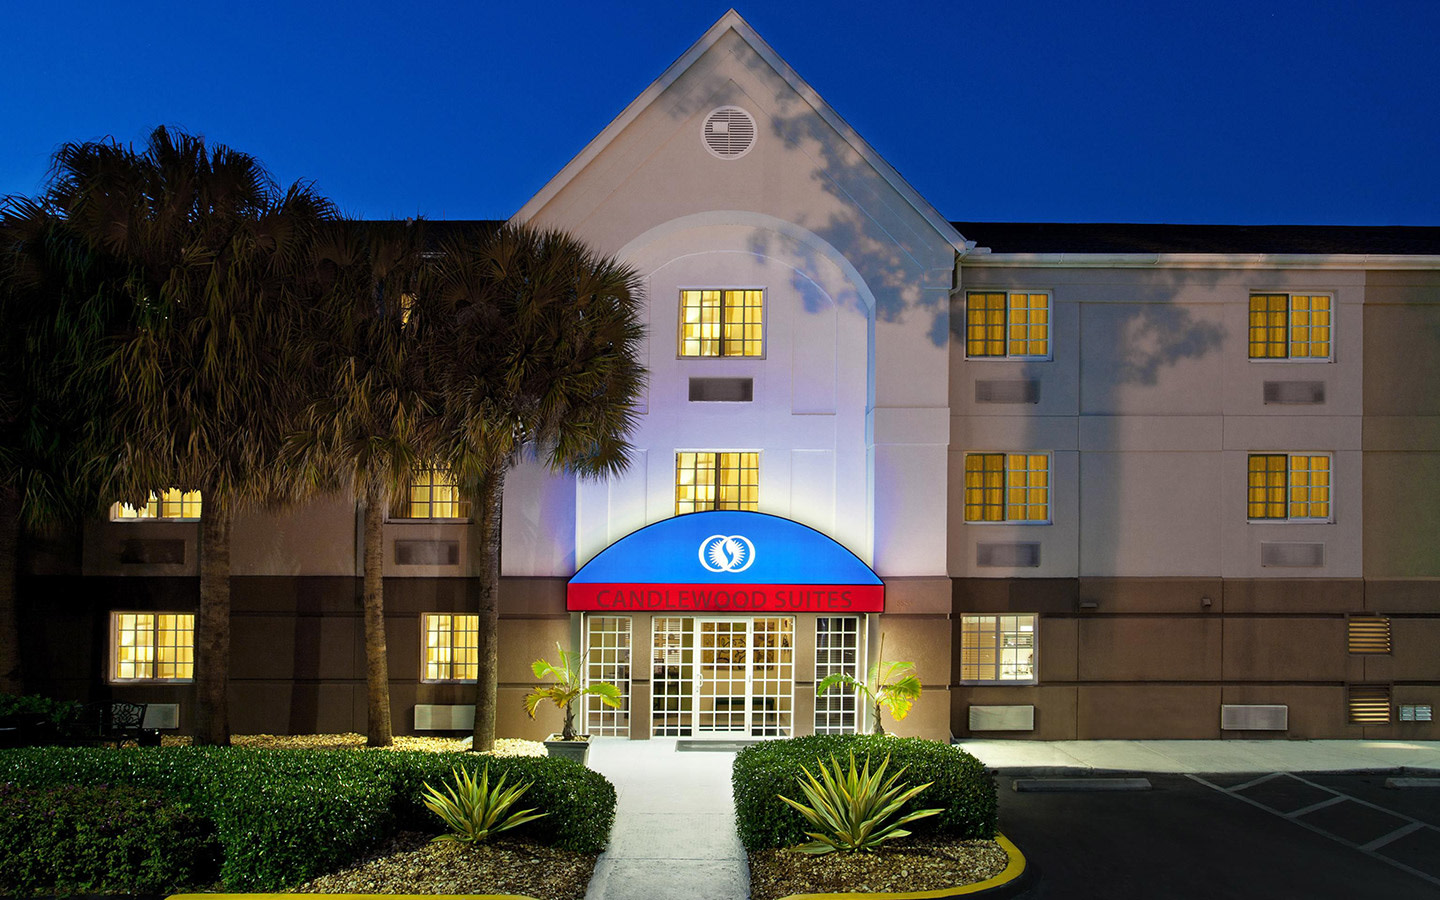 Candlewood Suites Miami Airport West/Doral